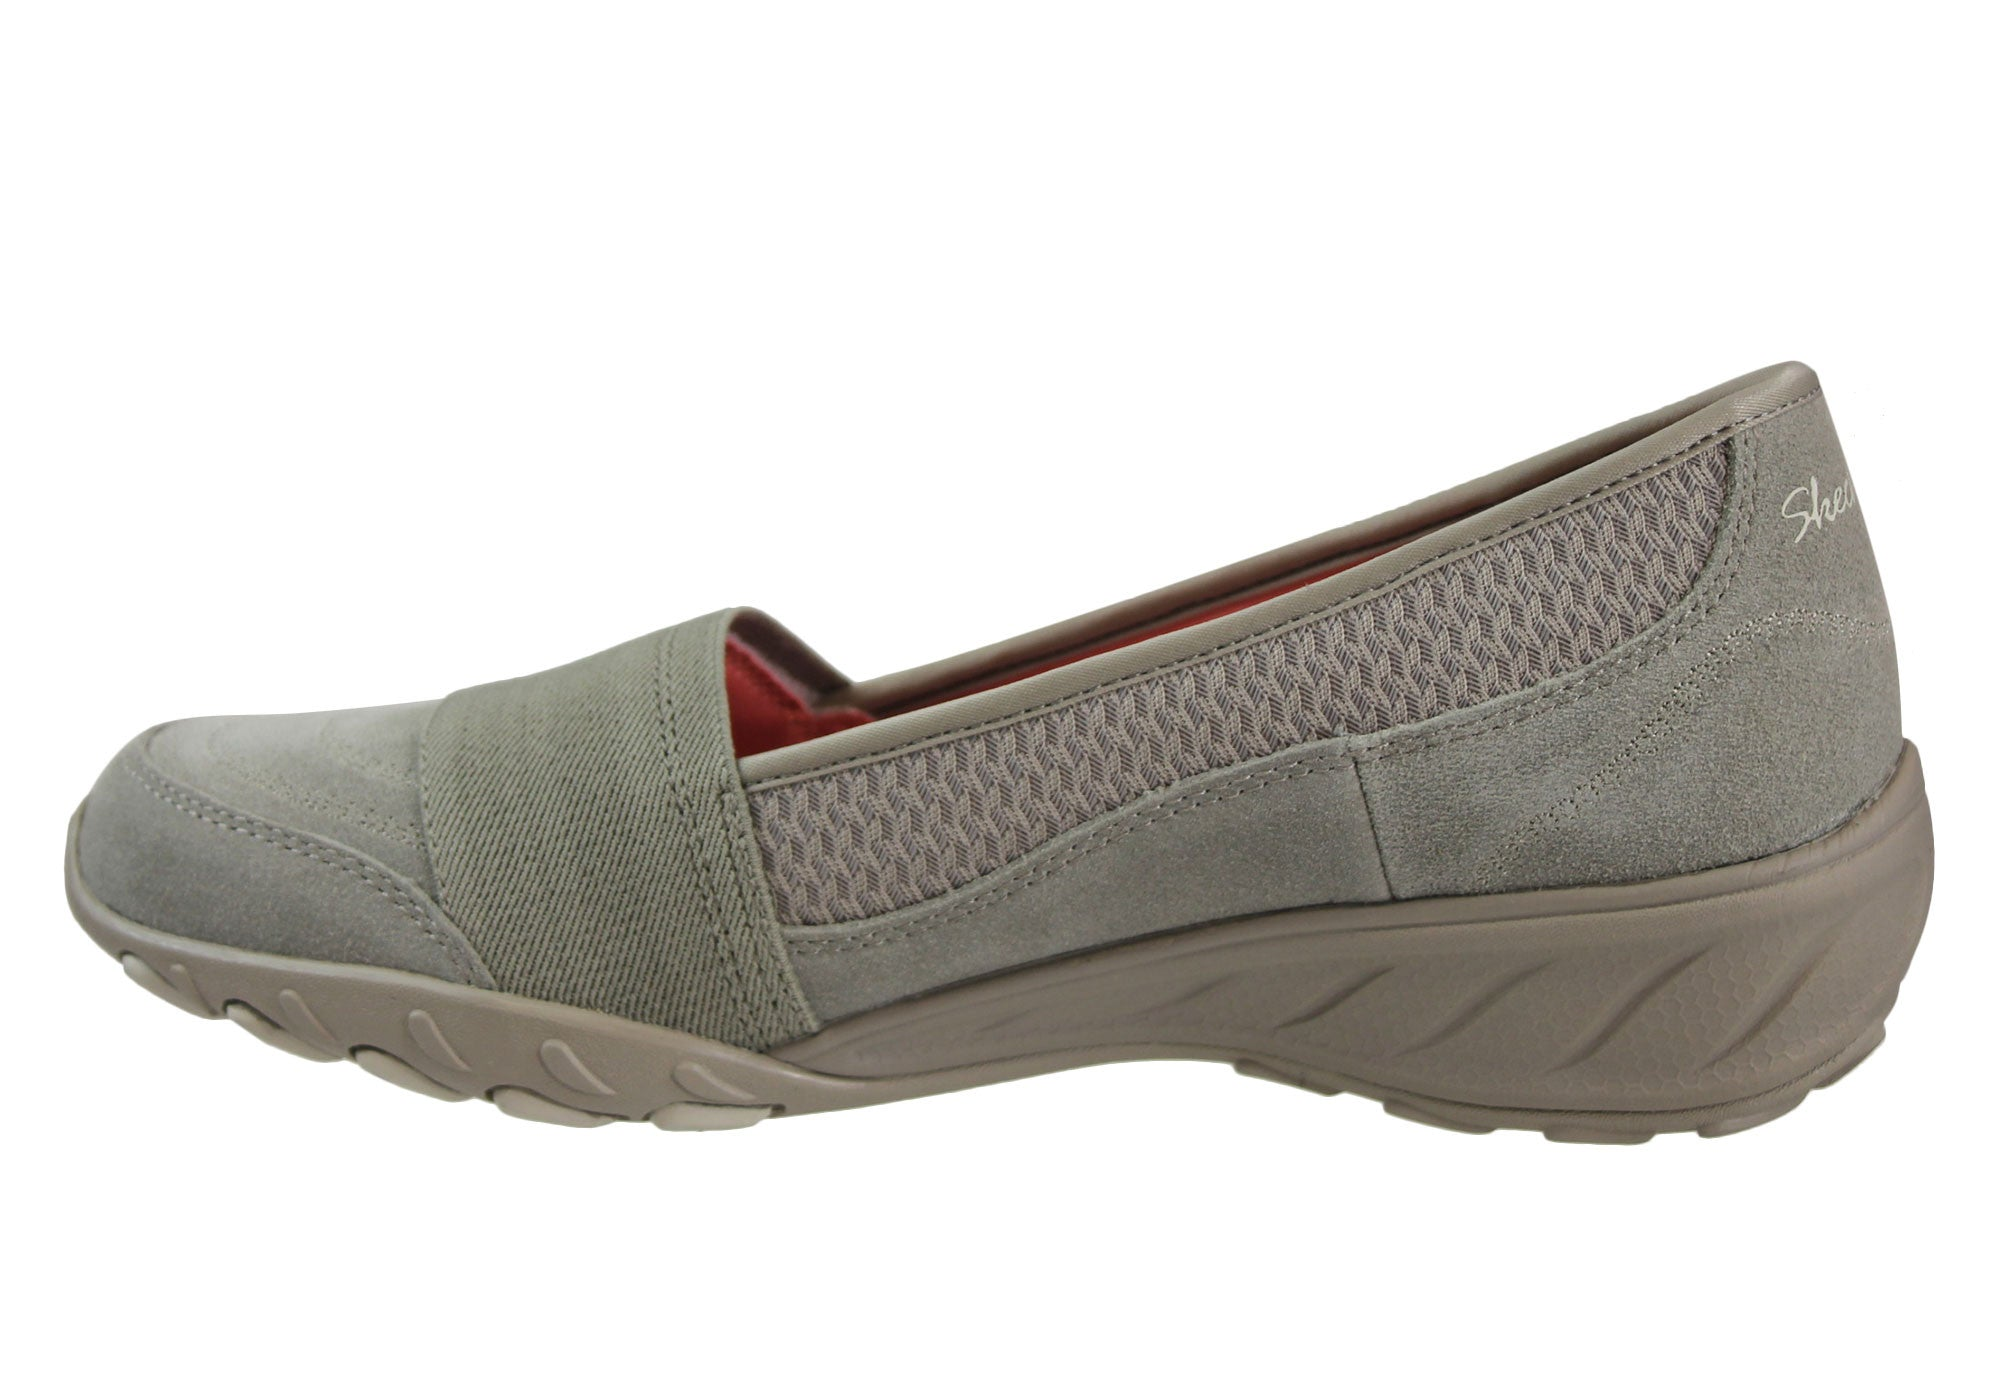 Skechers Savvy Womens Relaxed Fit Memory Foam Shoes